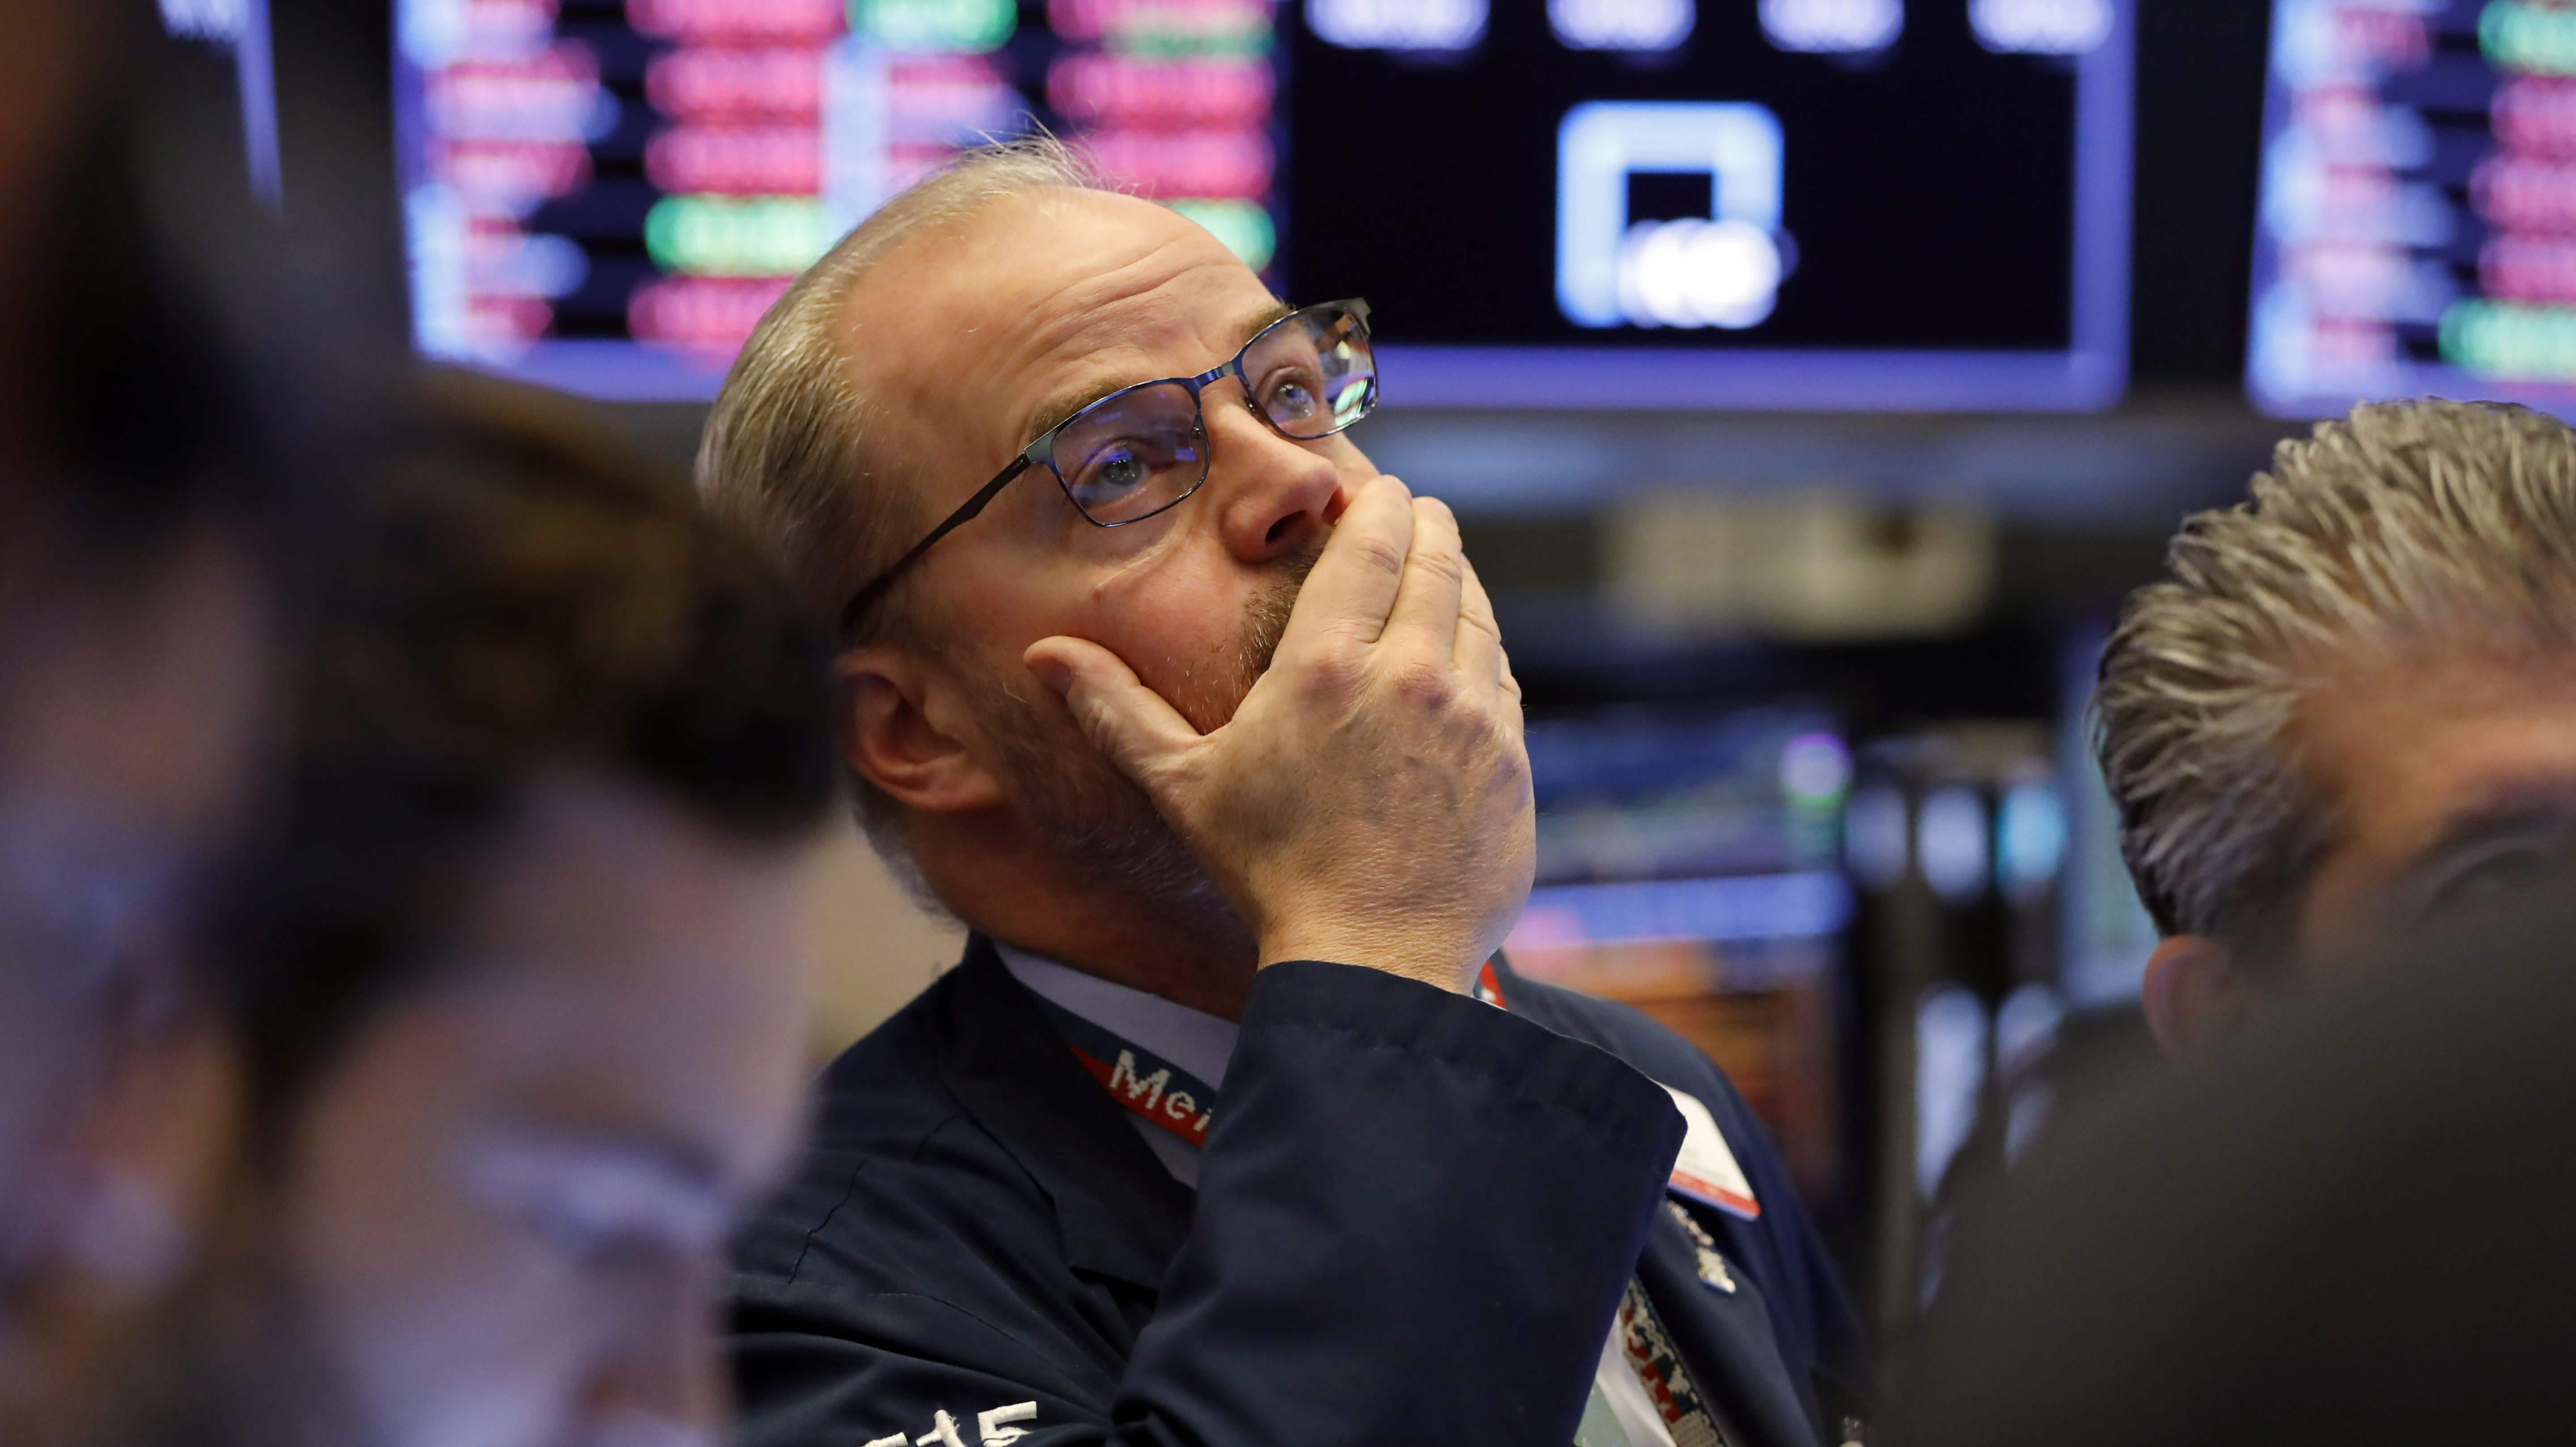 News post image: Stocks on track for worst week since 2008 financial crisis